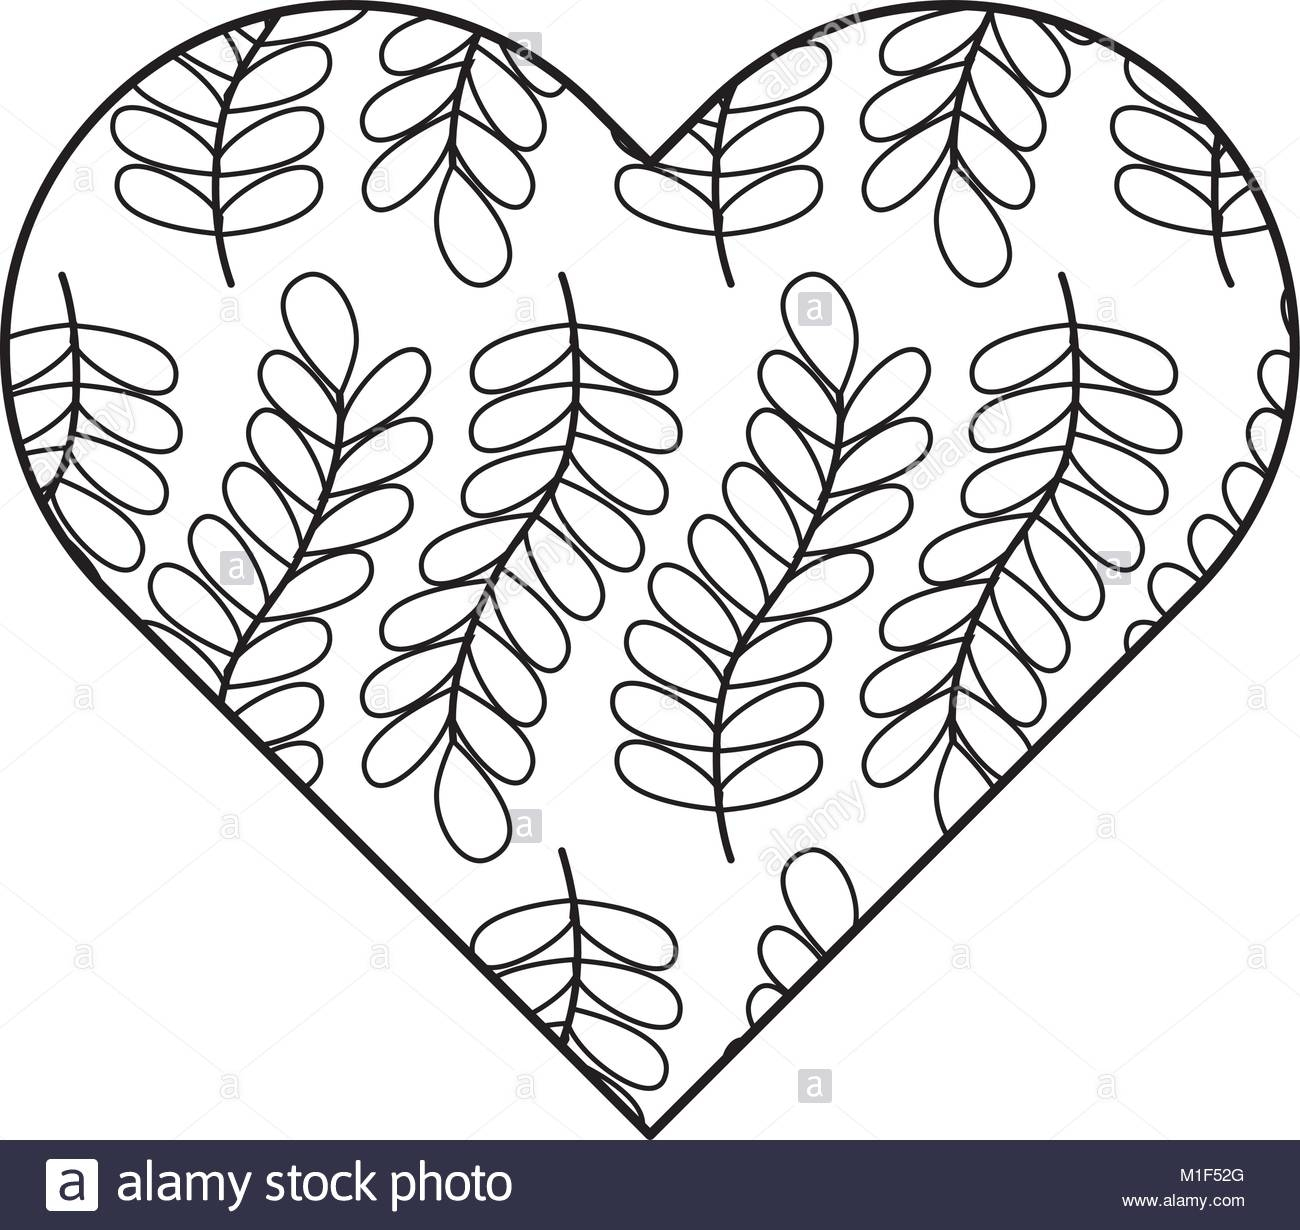 1300x1230 Awesome Checkered Heart Coloring Pages Gallery Great Collection